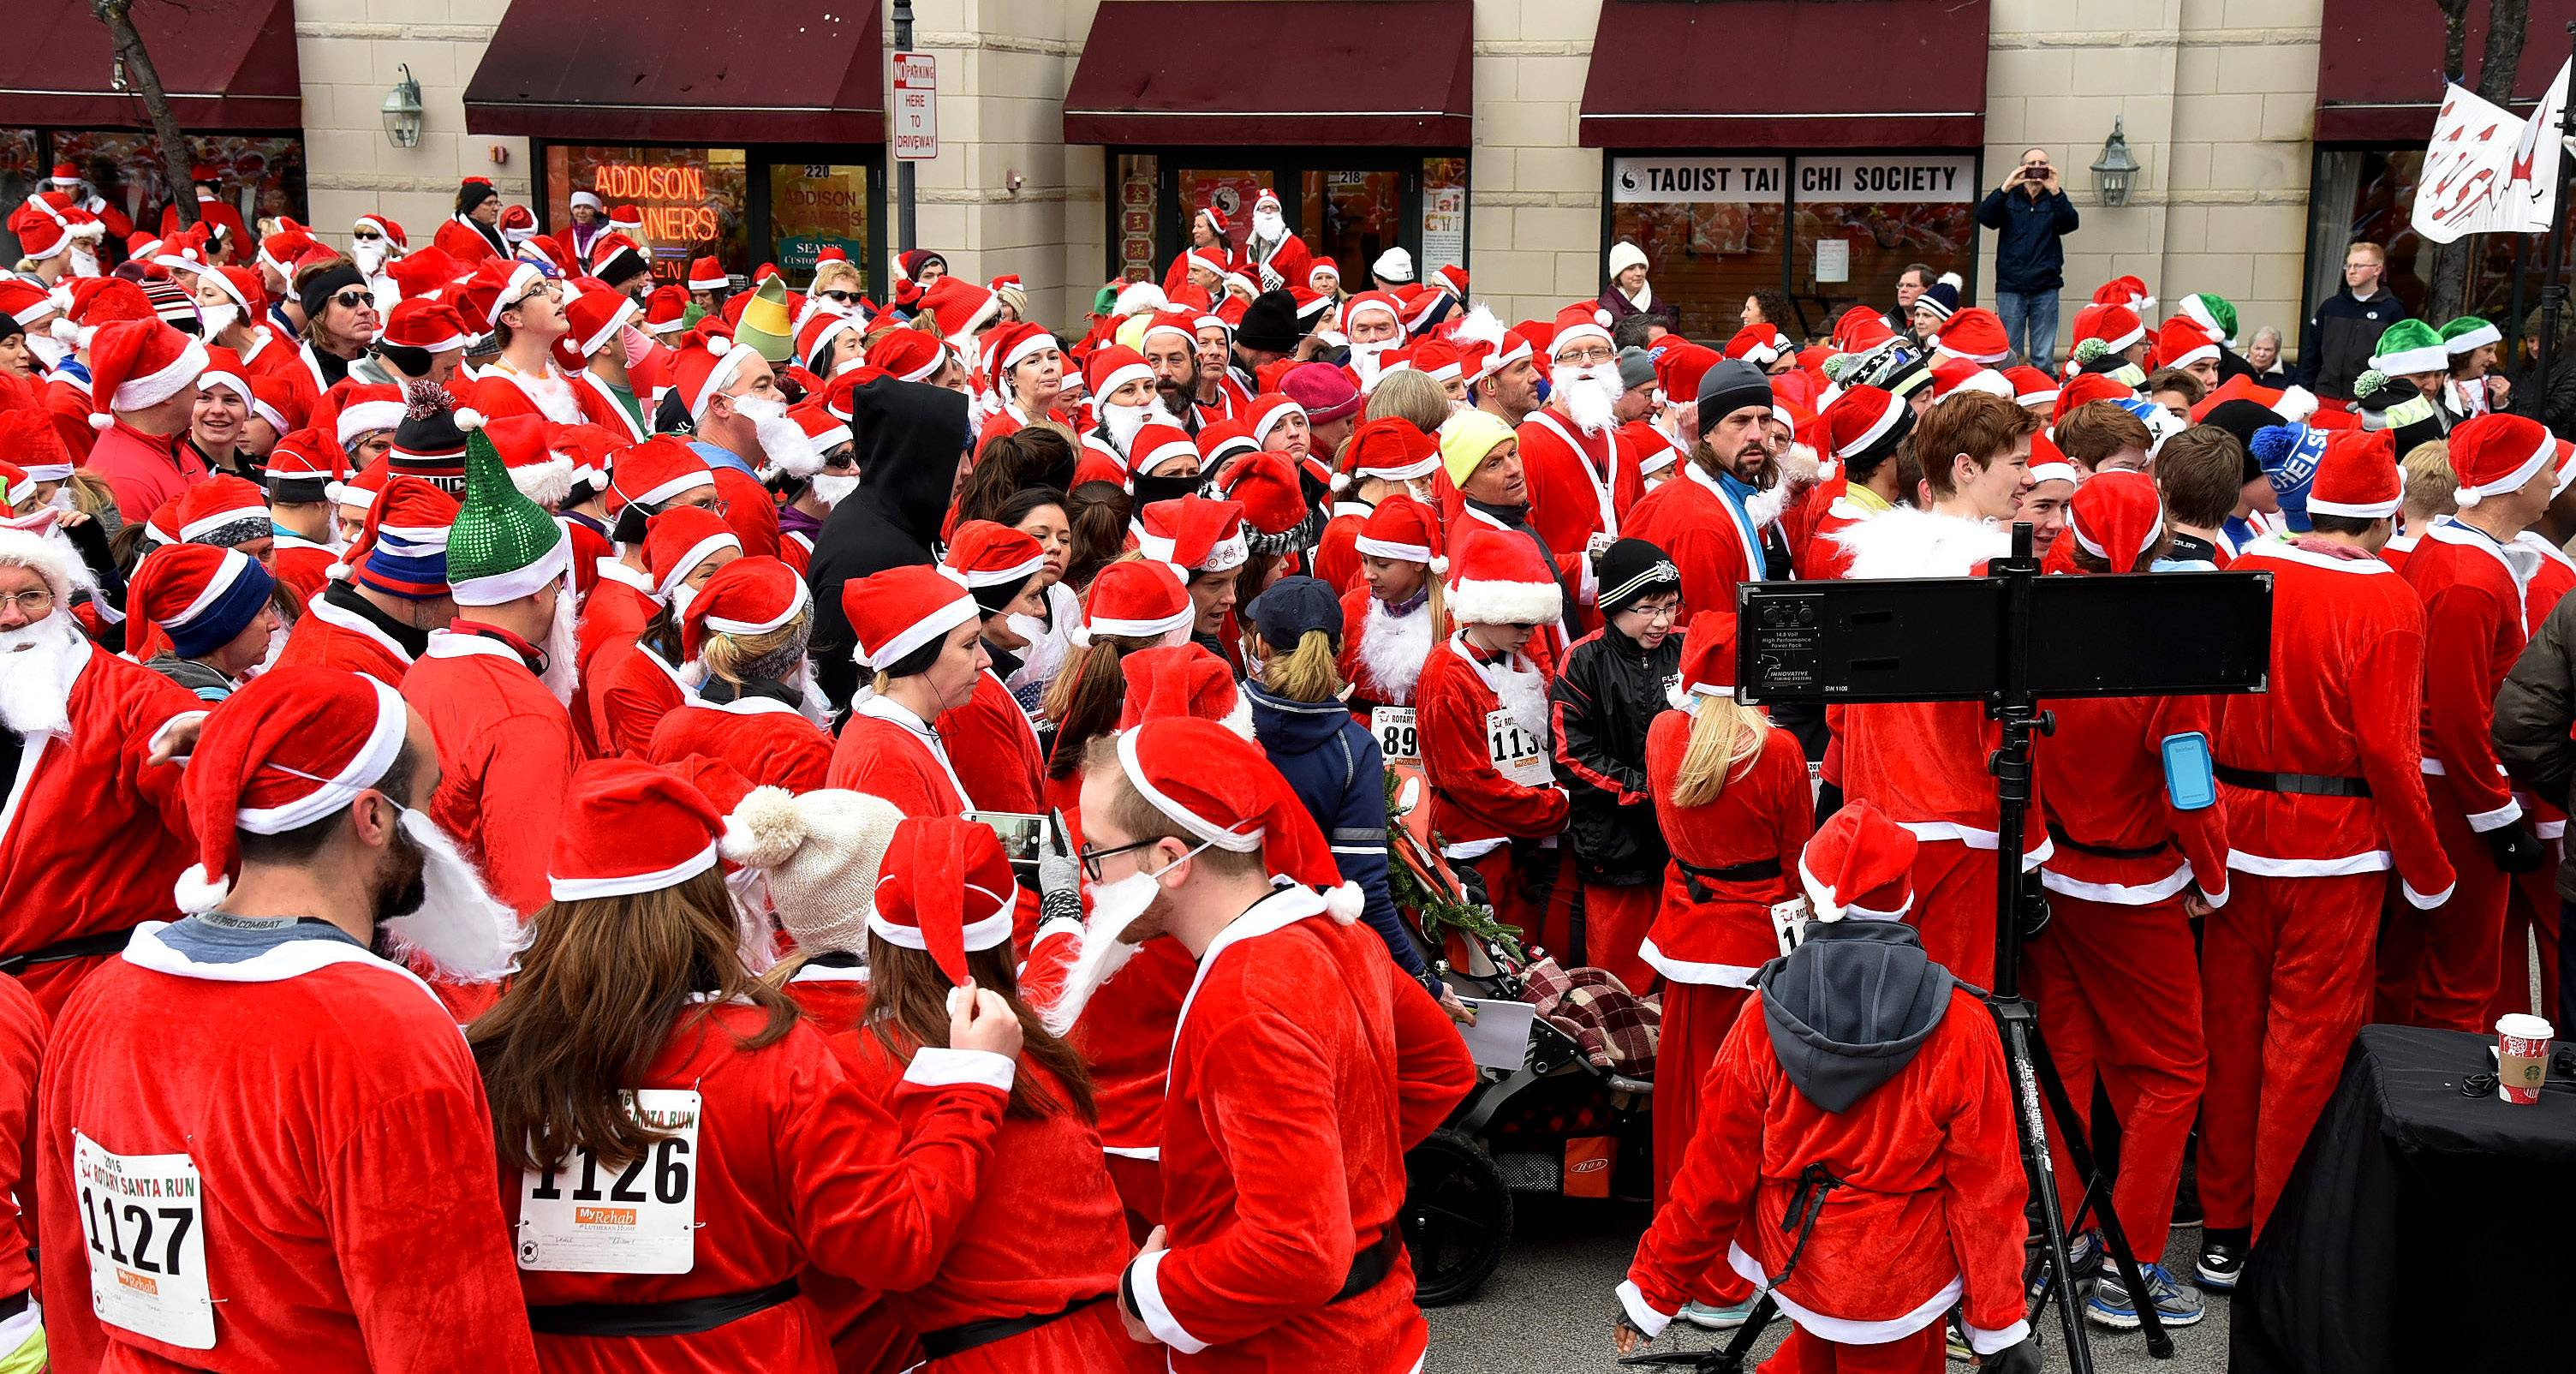 Runners squeeze through the starting line for the annual Rotary Santa Run in downtown Arlington Heights.